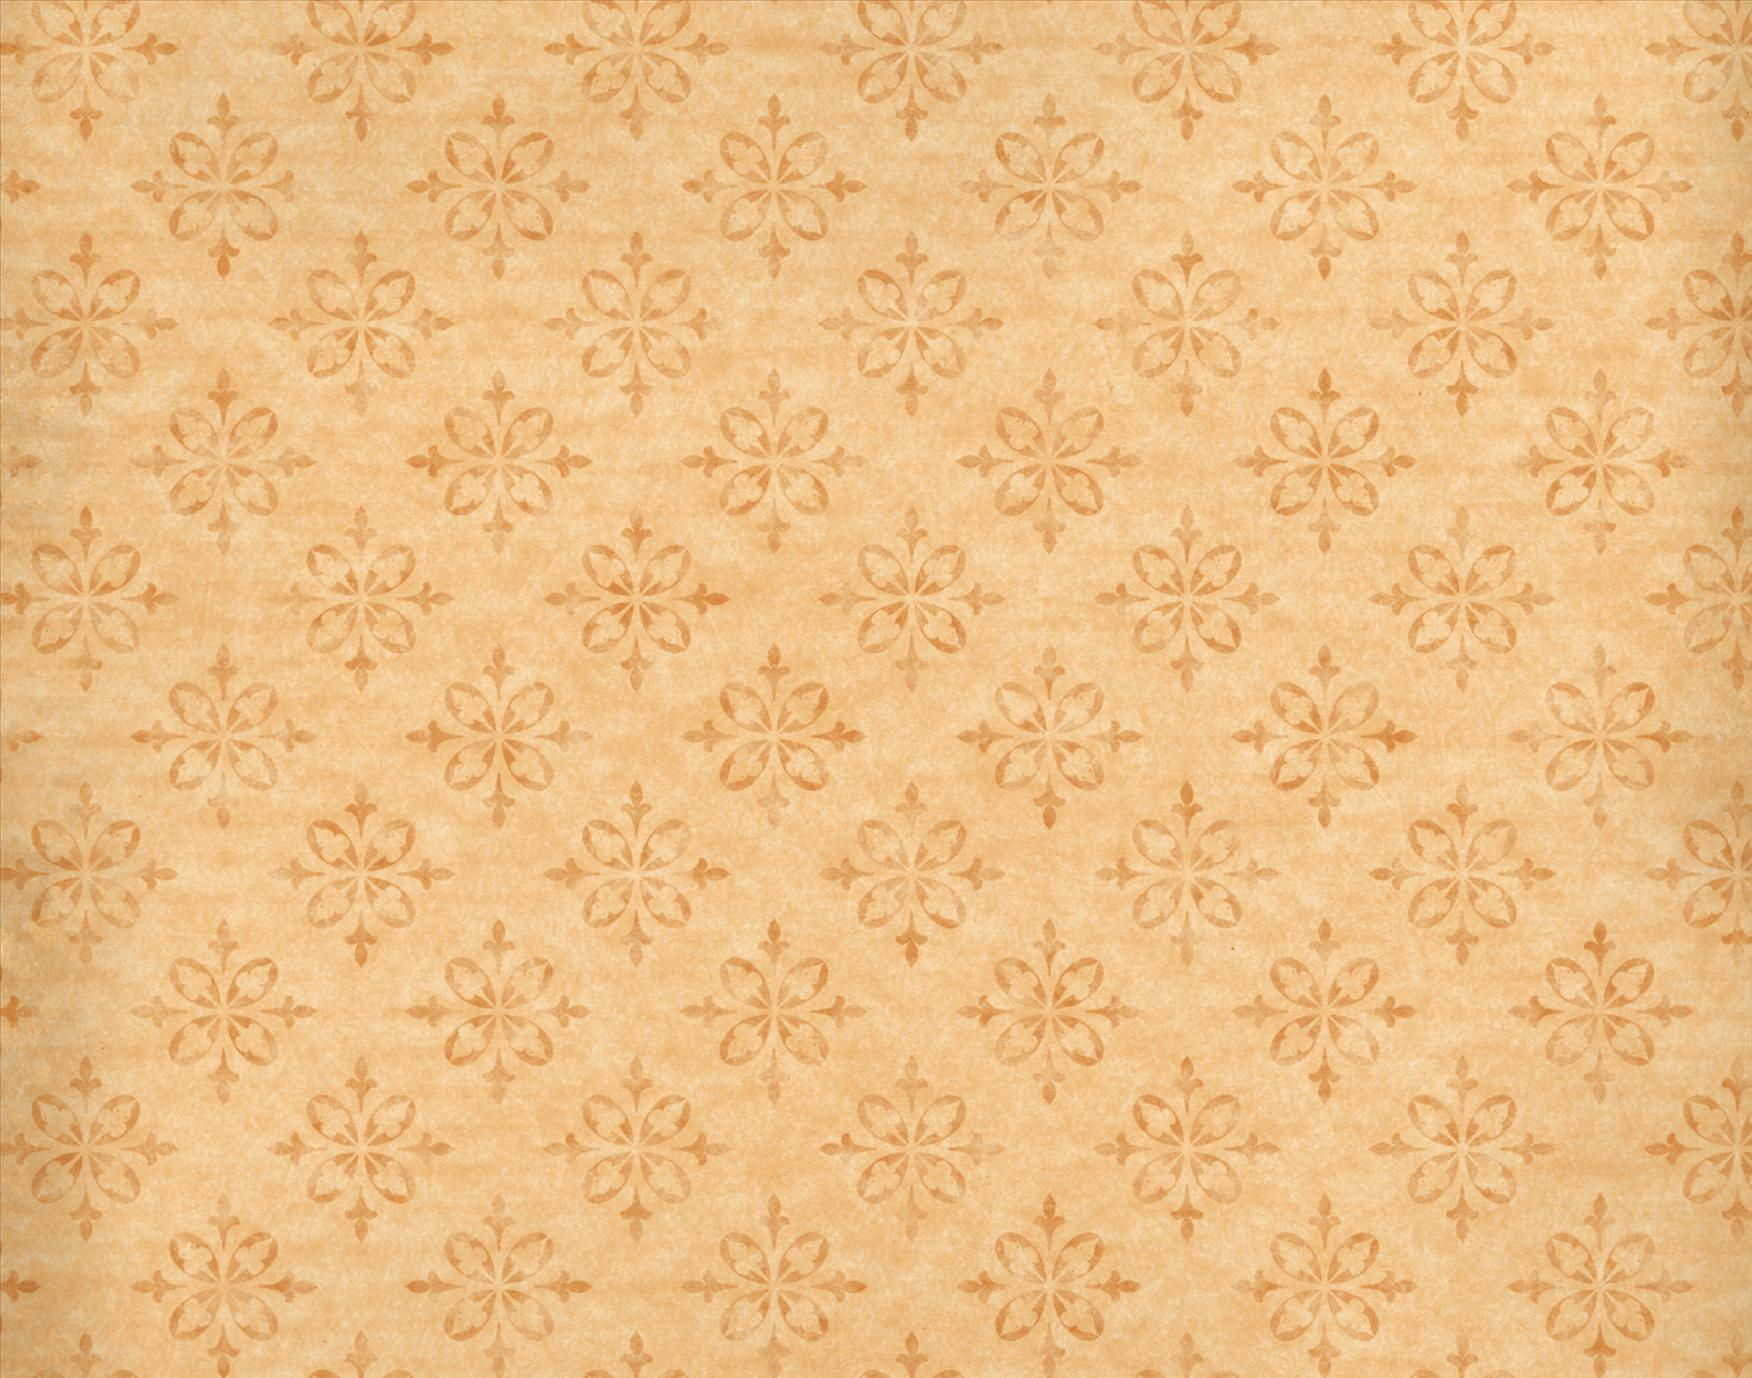 light gold vintage background - photo #47